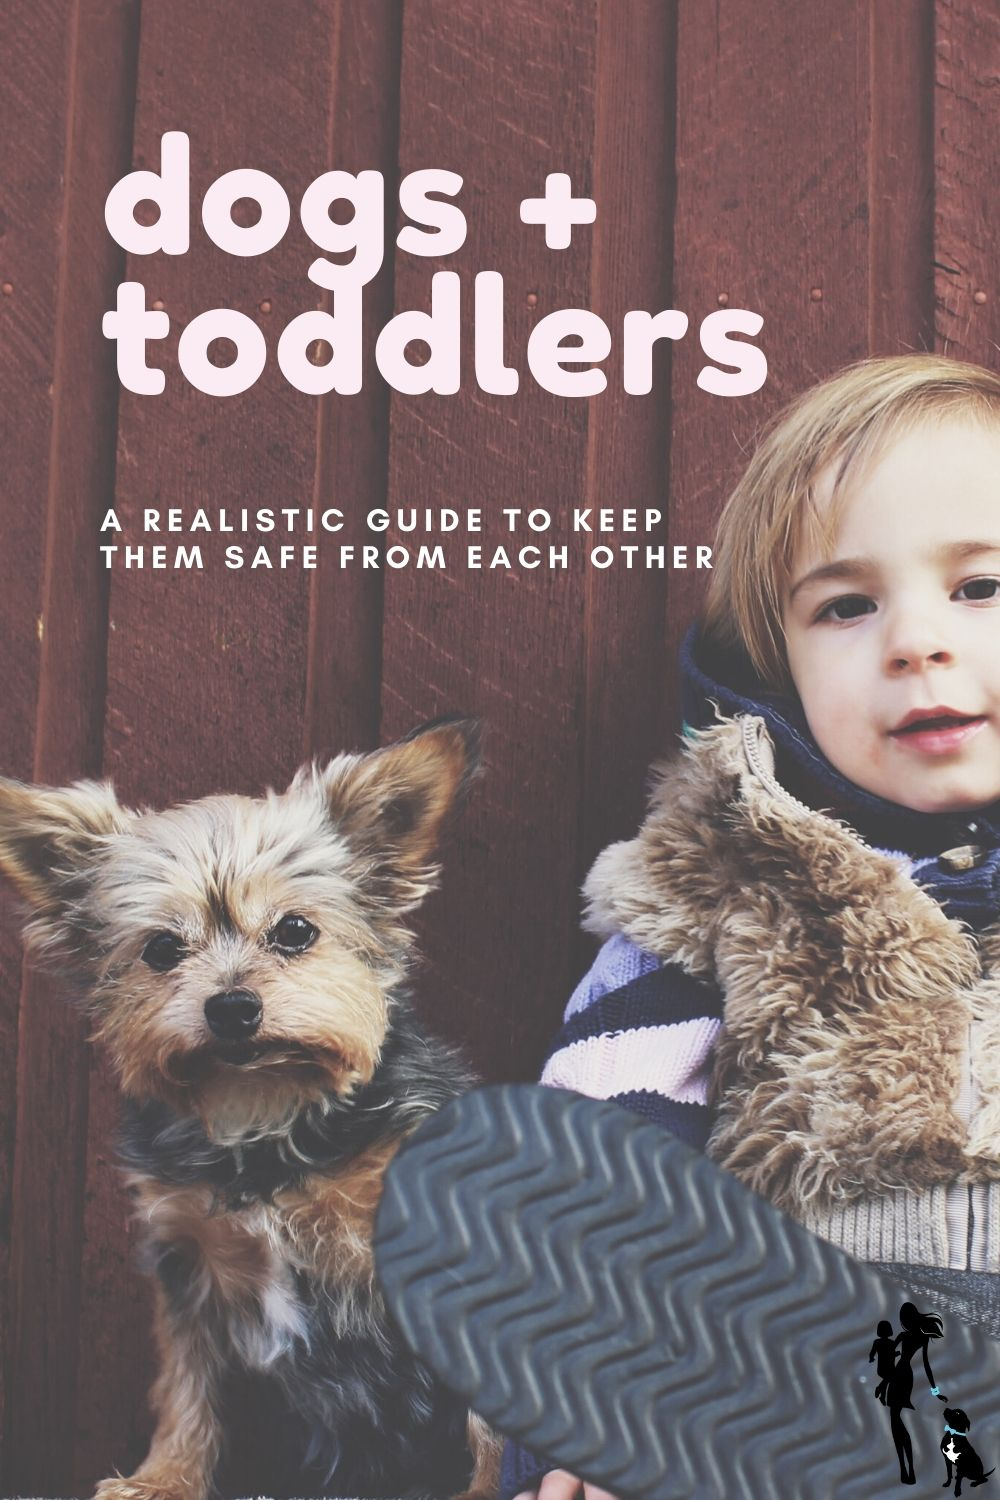 Dogs and toddlers: How to keep them safe and happy together